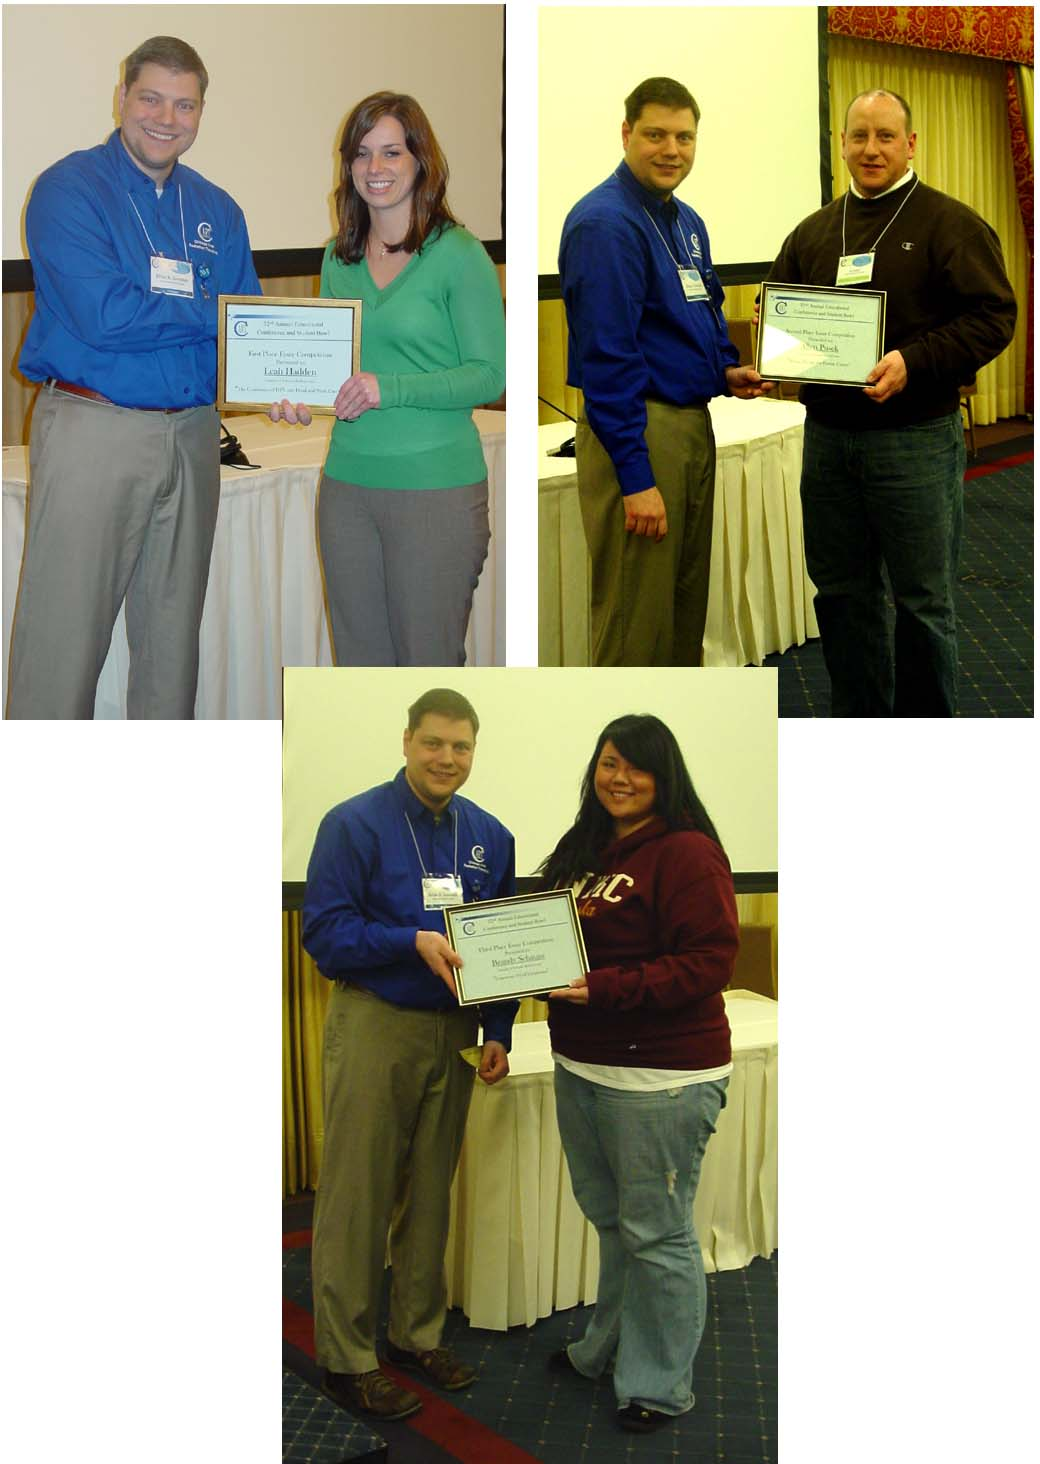 Radiation Therapy Students Receive Awards